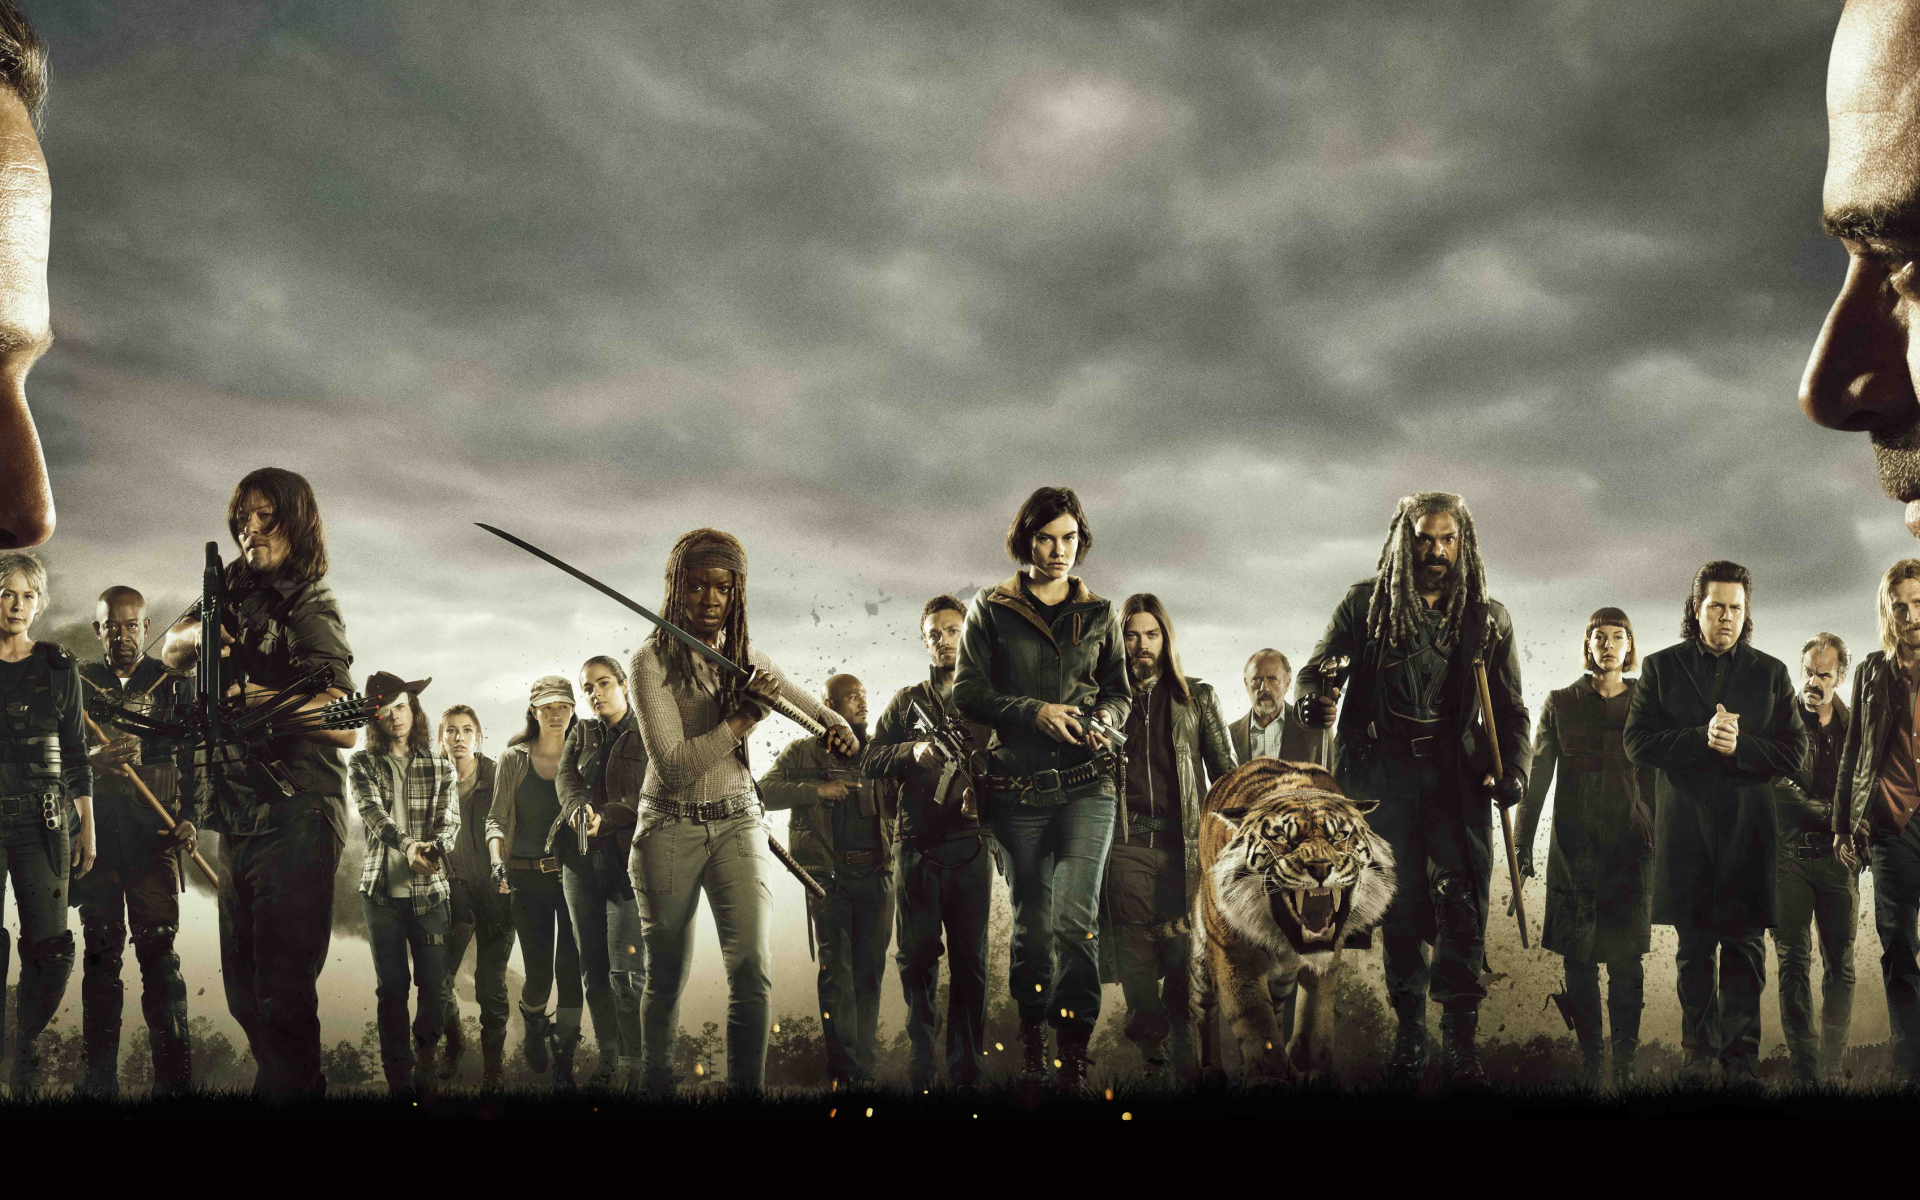 download the walking dead cast poster 480x800 resolution